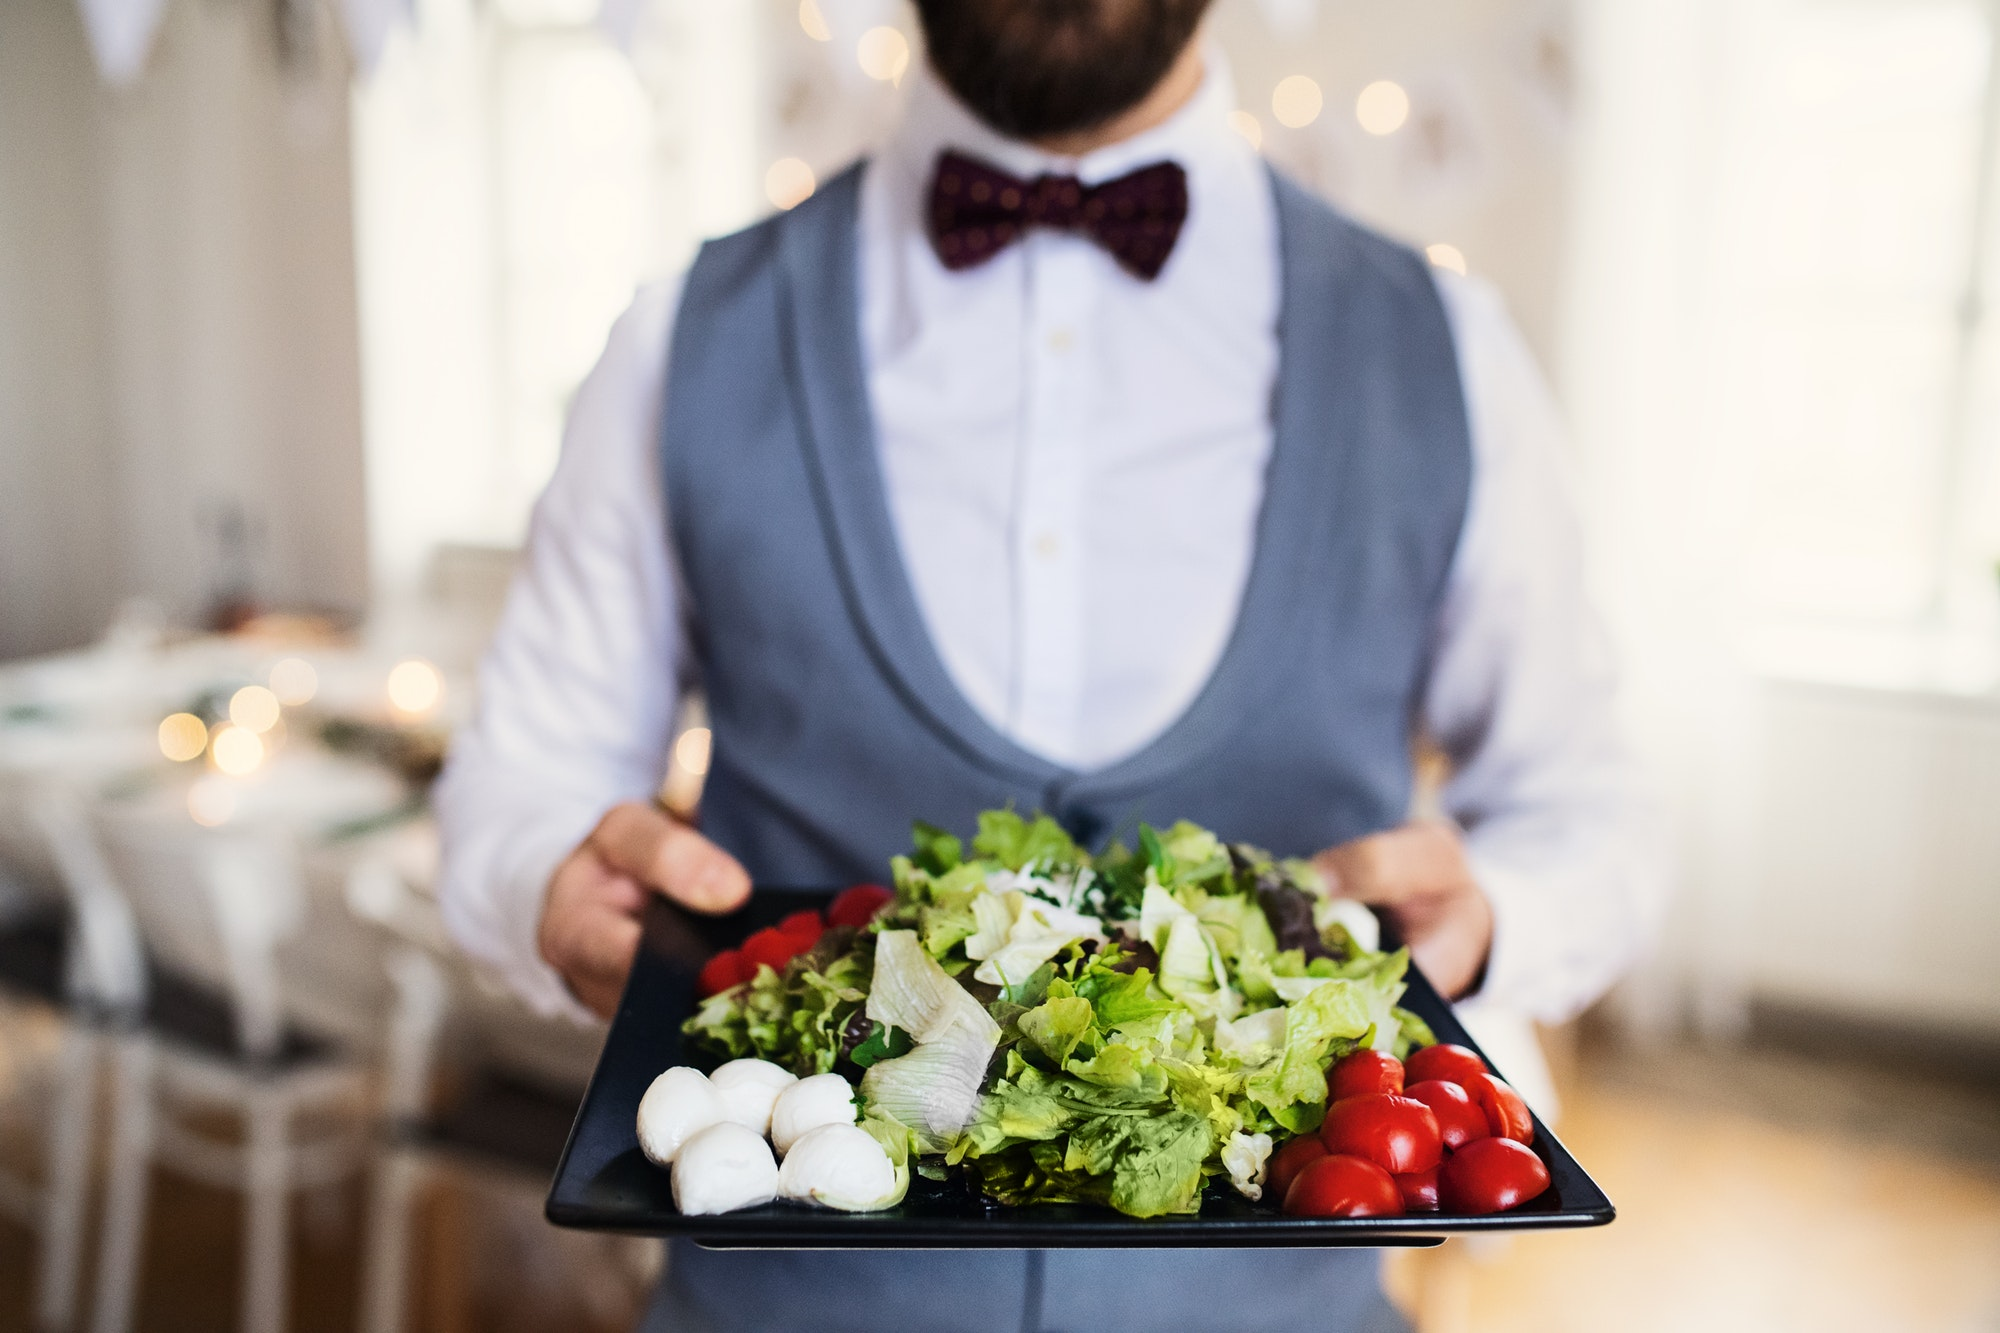 Midsection of man standing indoors in a room set for a party, holding a tray with vegetables.